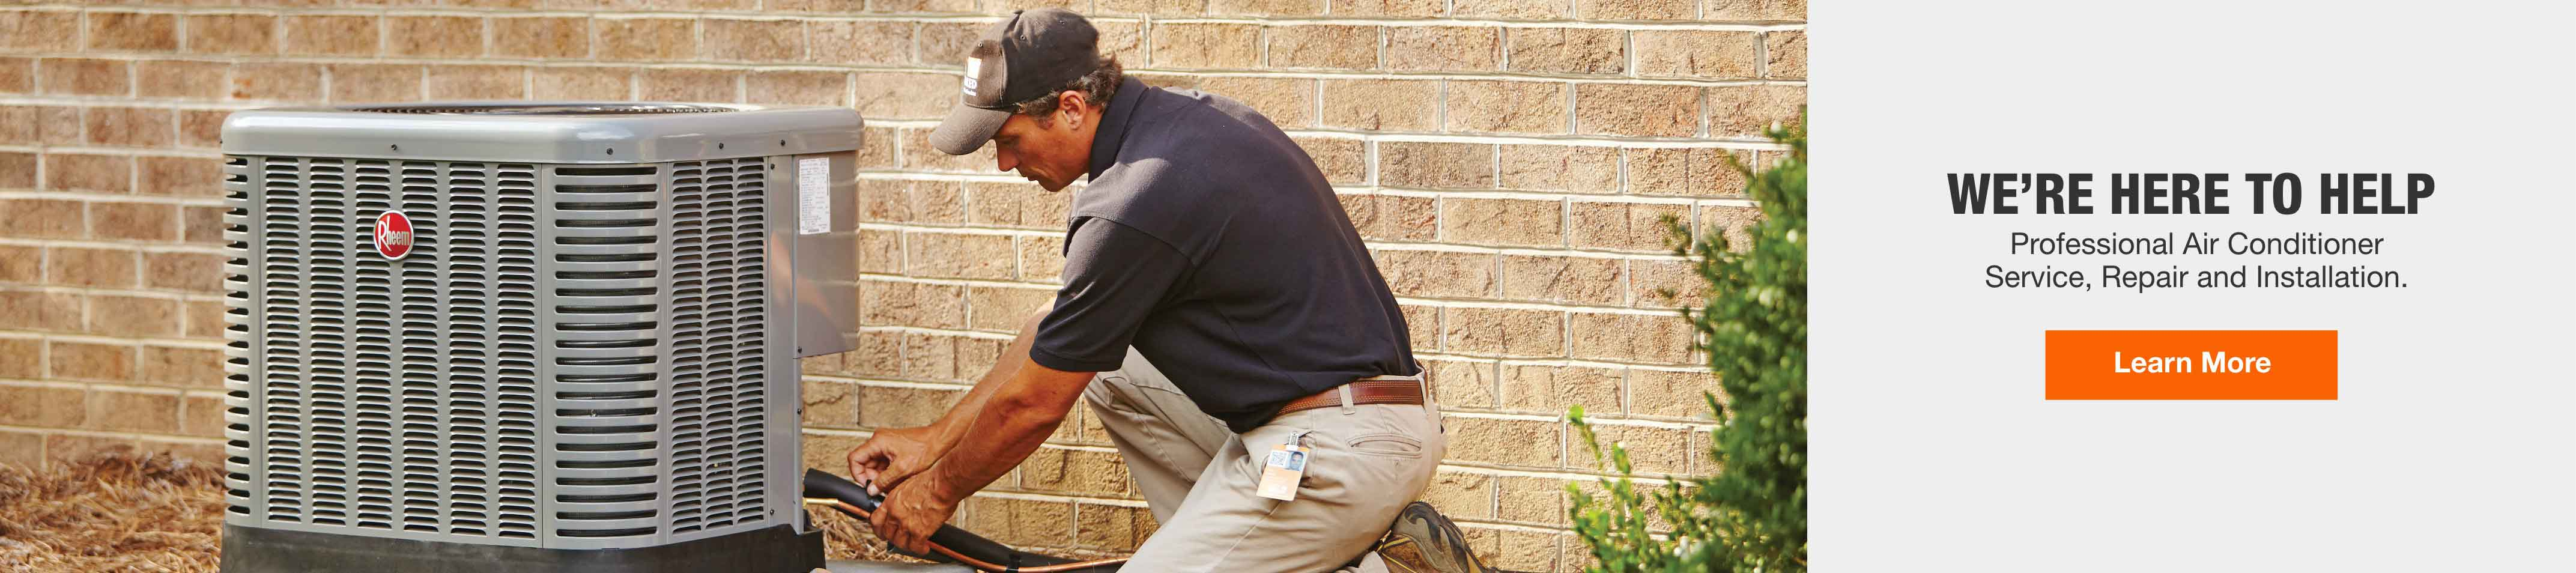 We're Here to Help. Professional Air Conditioner Service, Repair and Installation. Learn More.